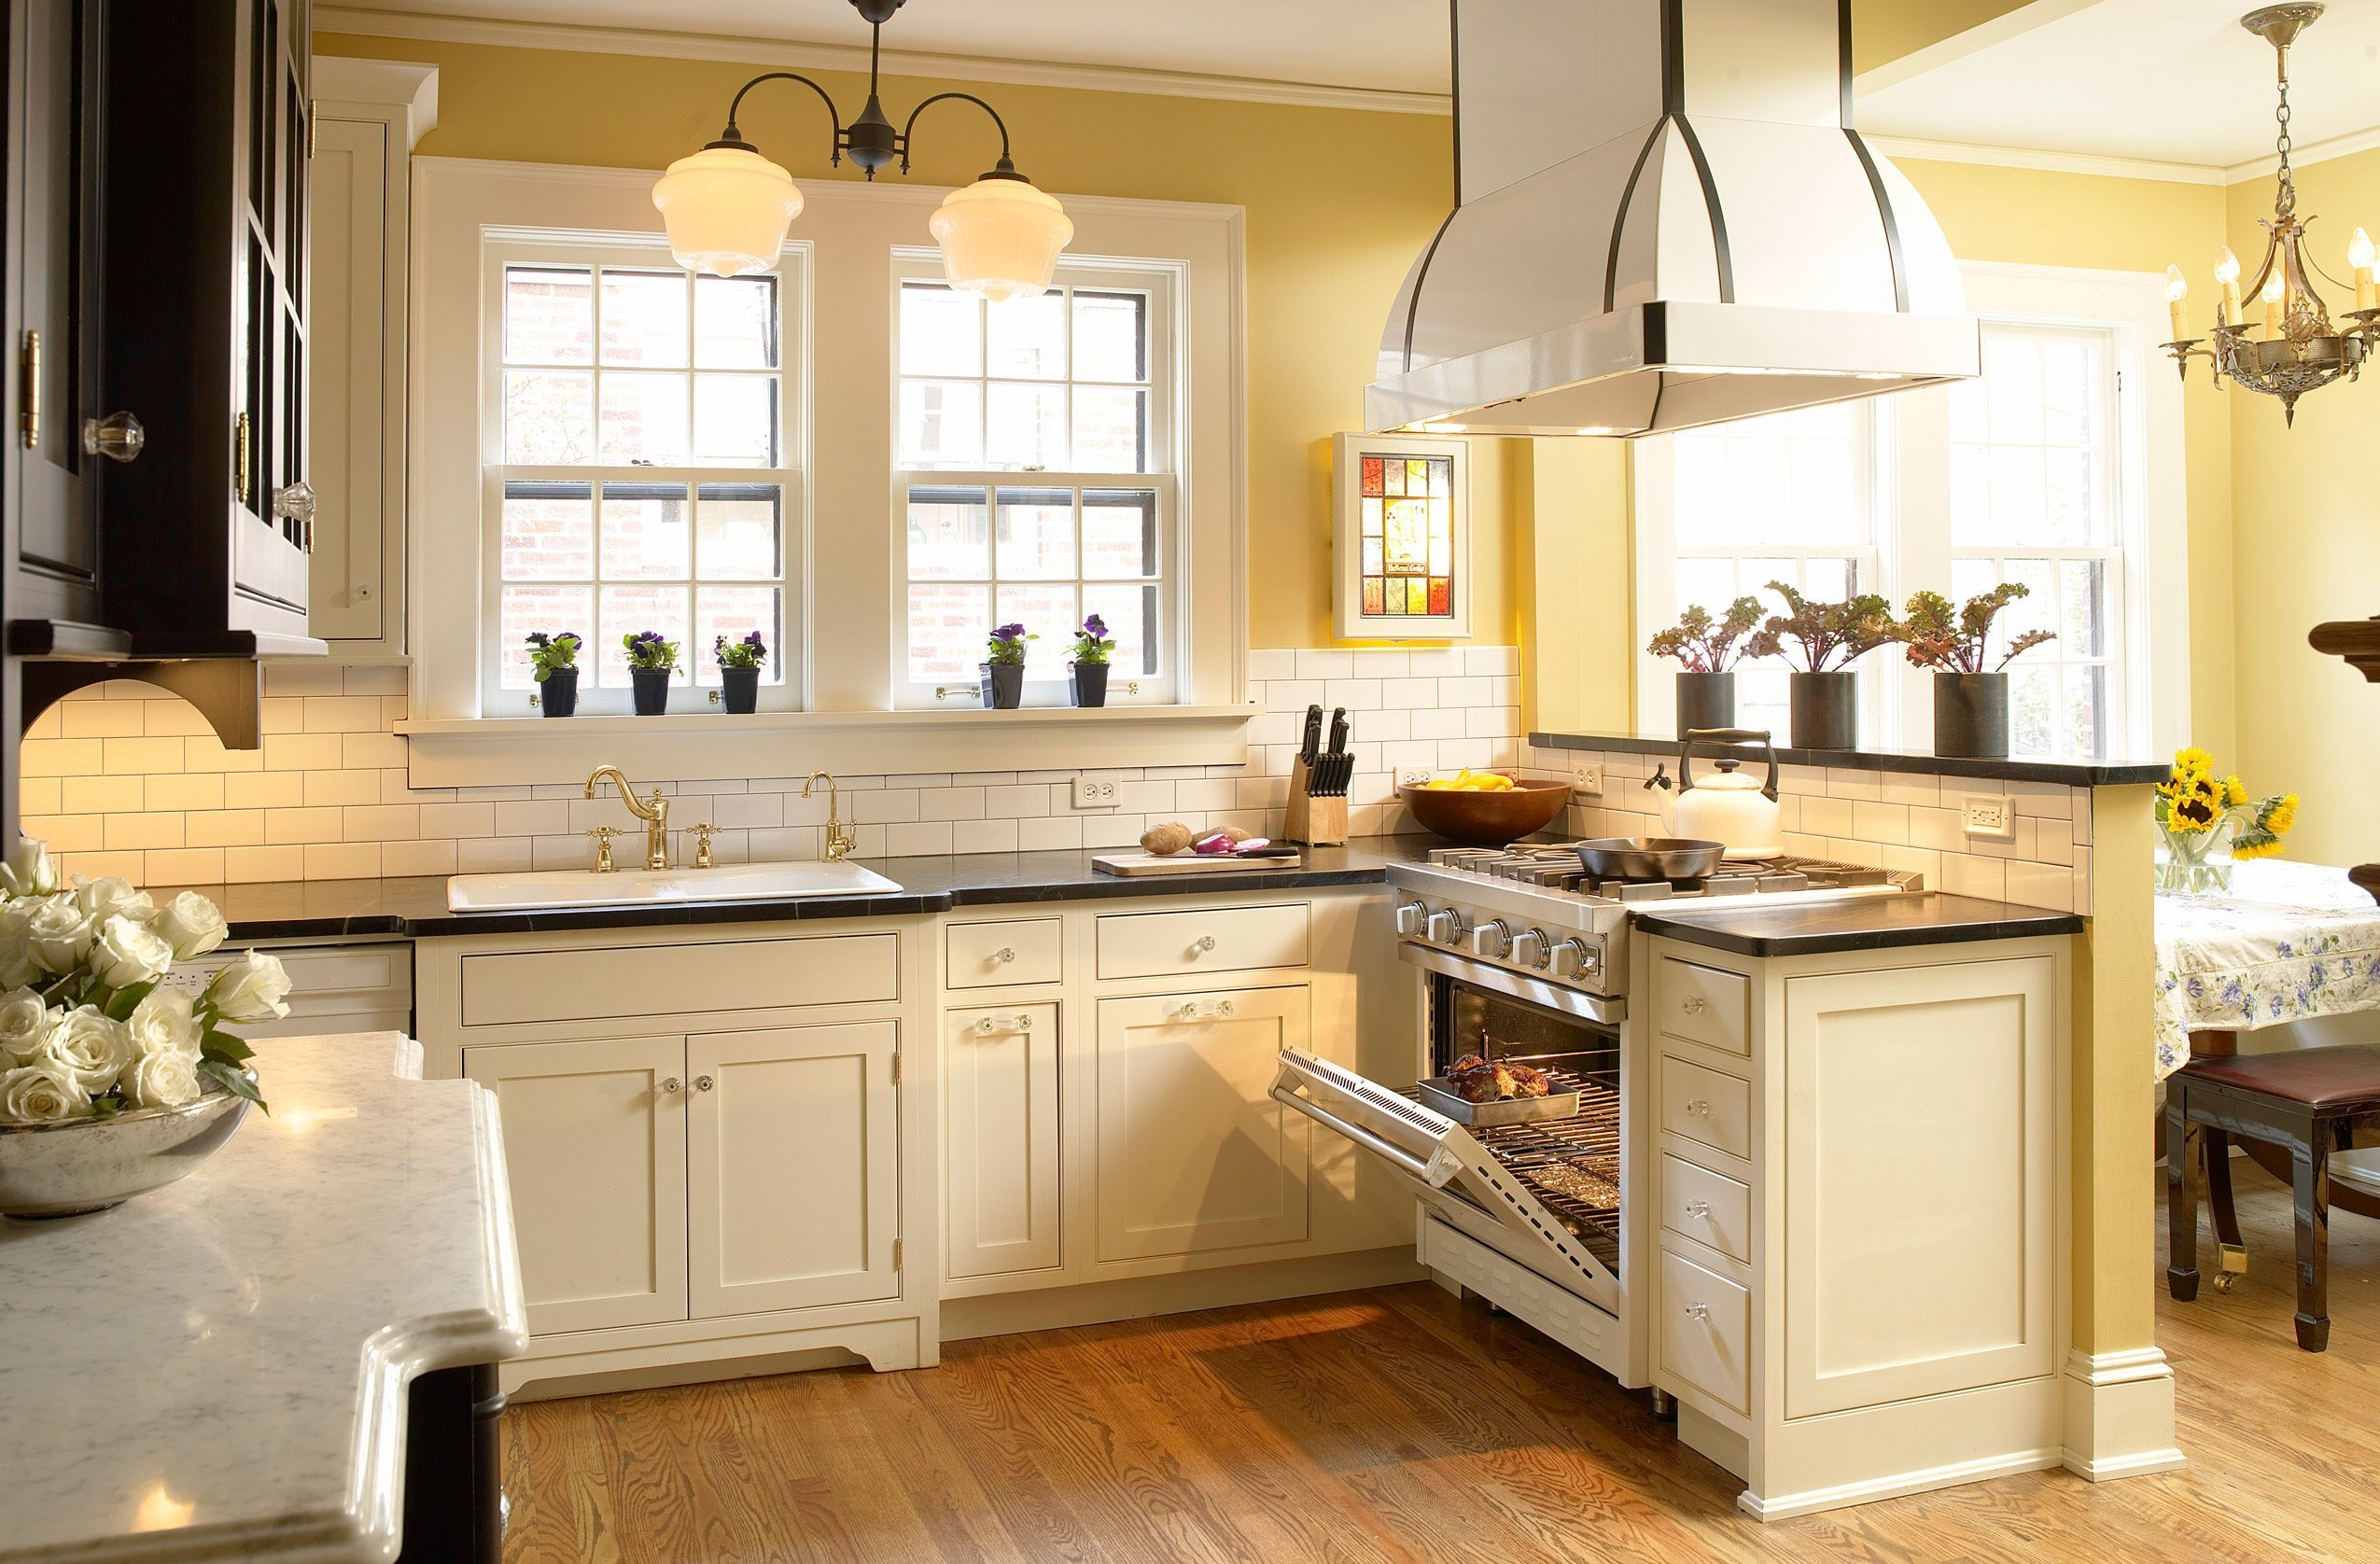 Delicieux Antique White Kitchen Cabinets With Granite Countertops